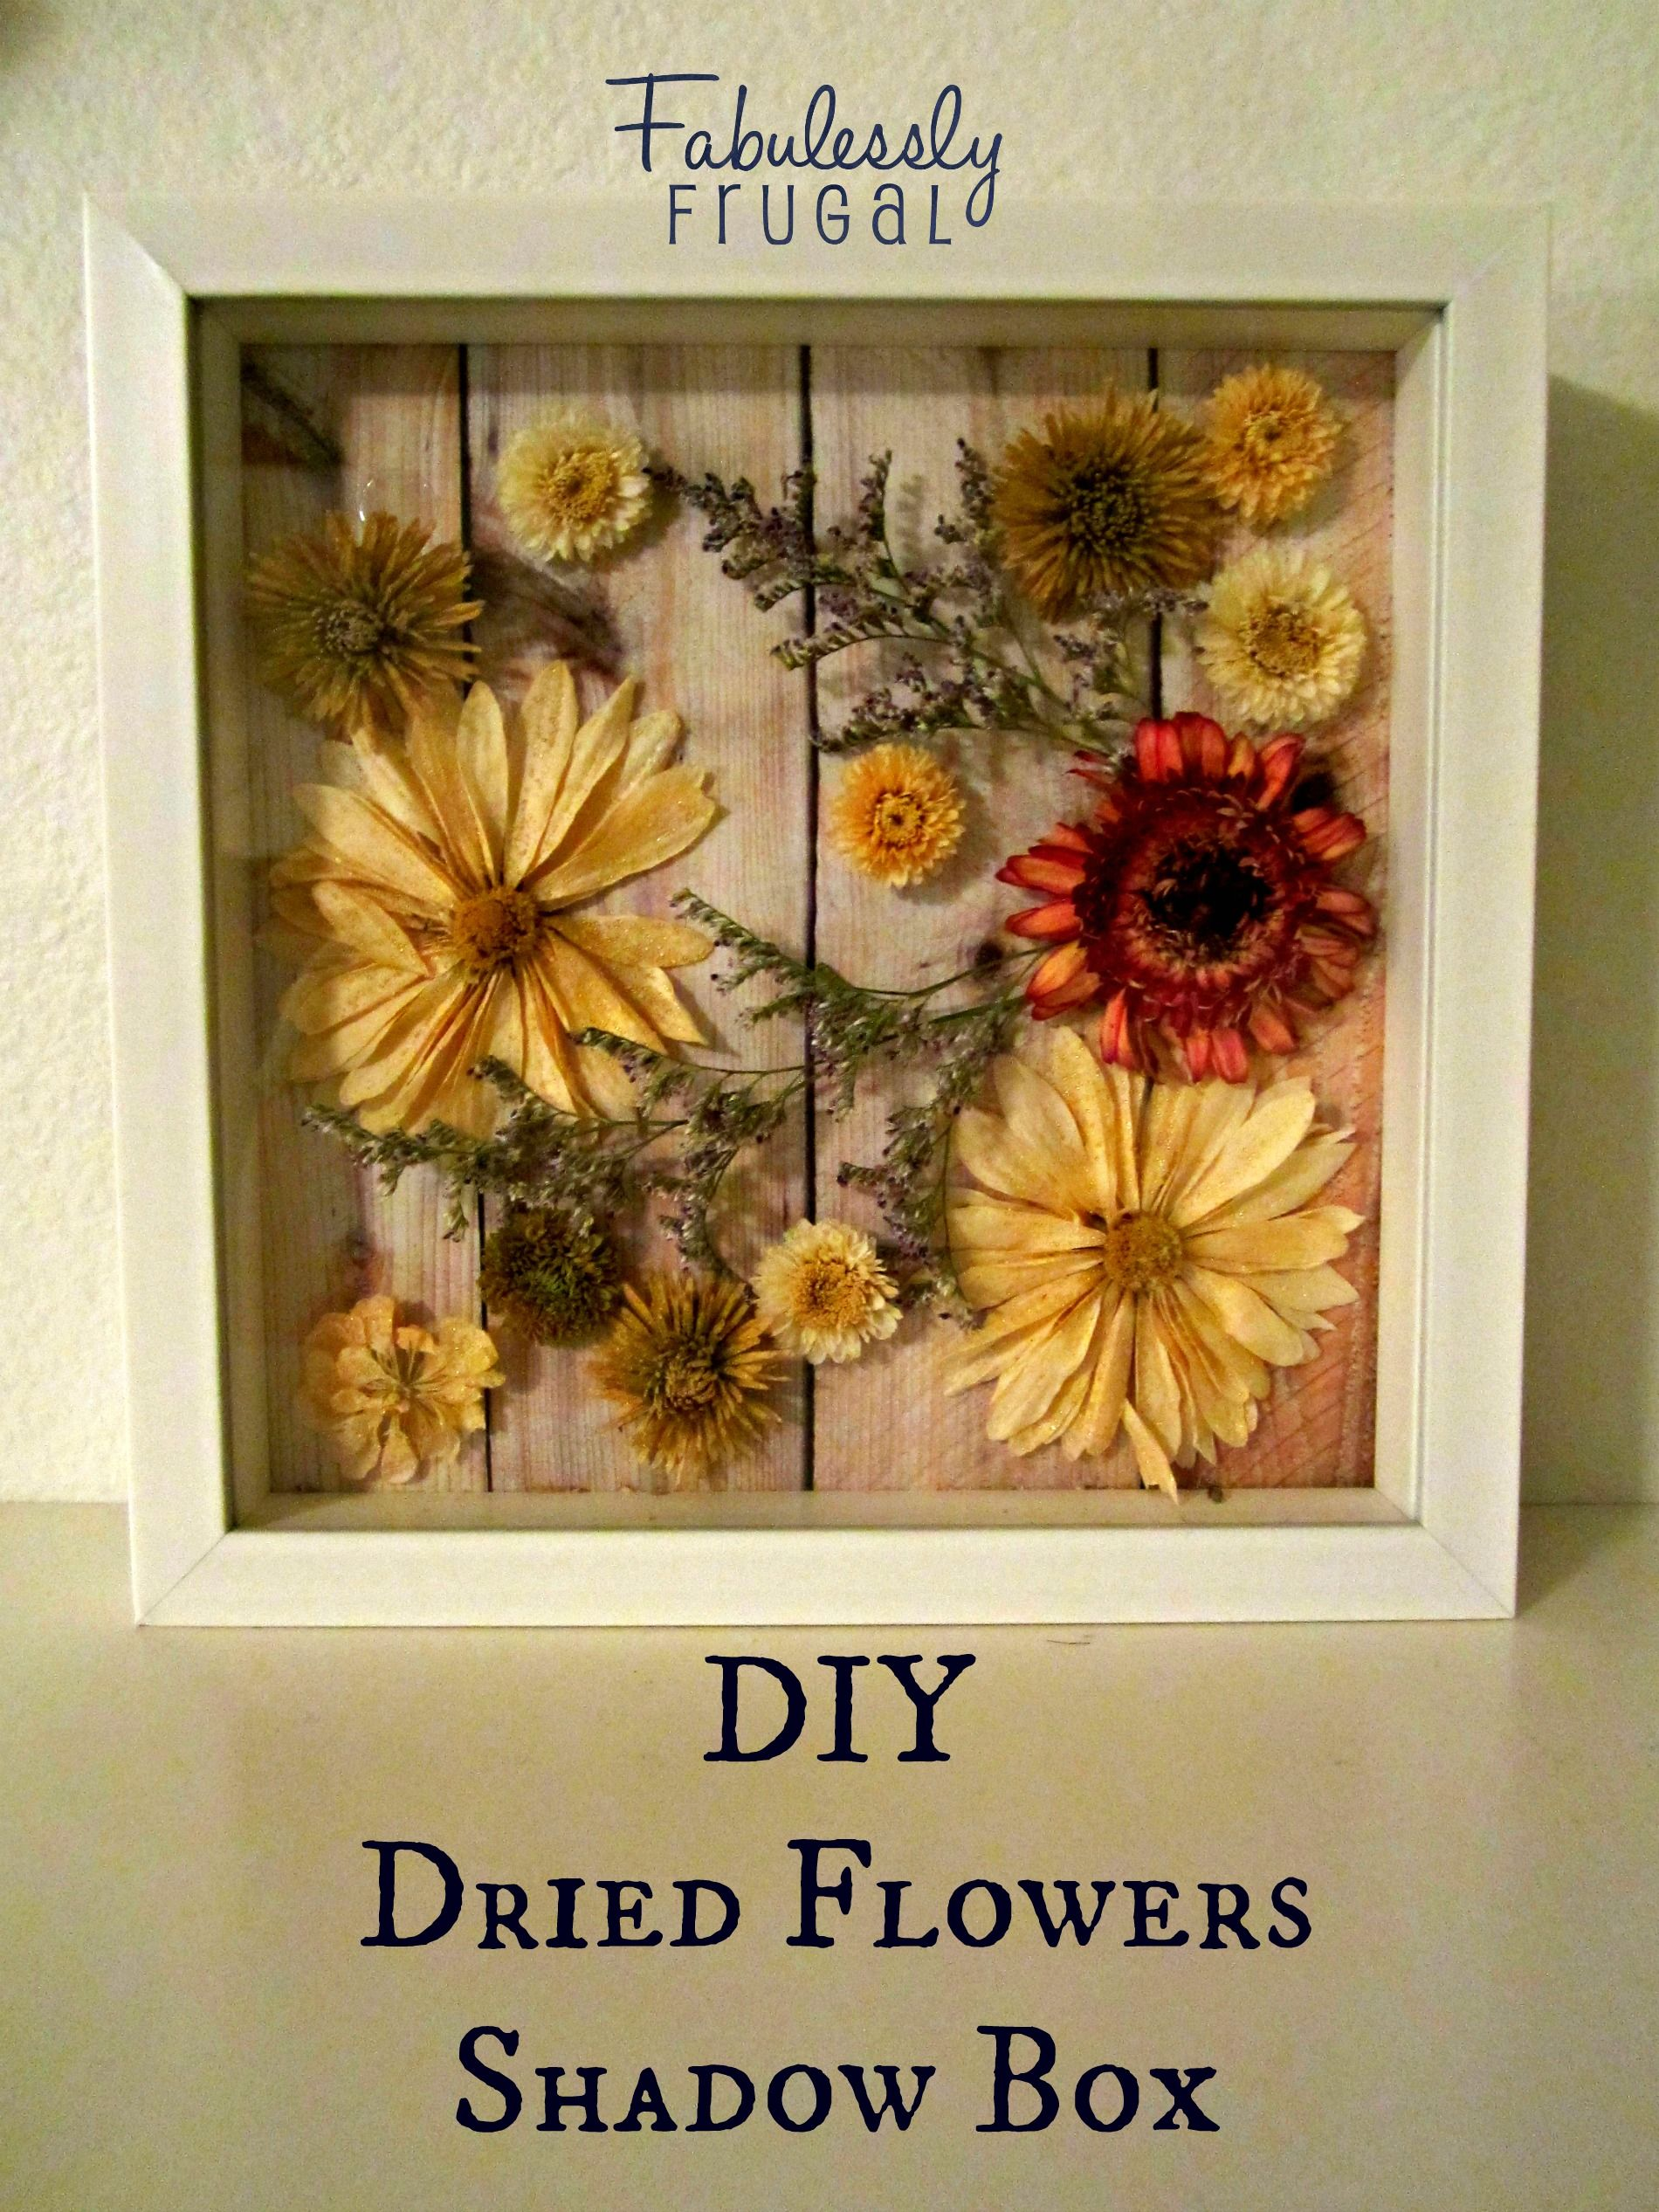 DIY Dried Flowers Shadow Box | Pinterest | Window types, Shadow box ...